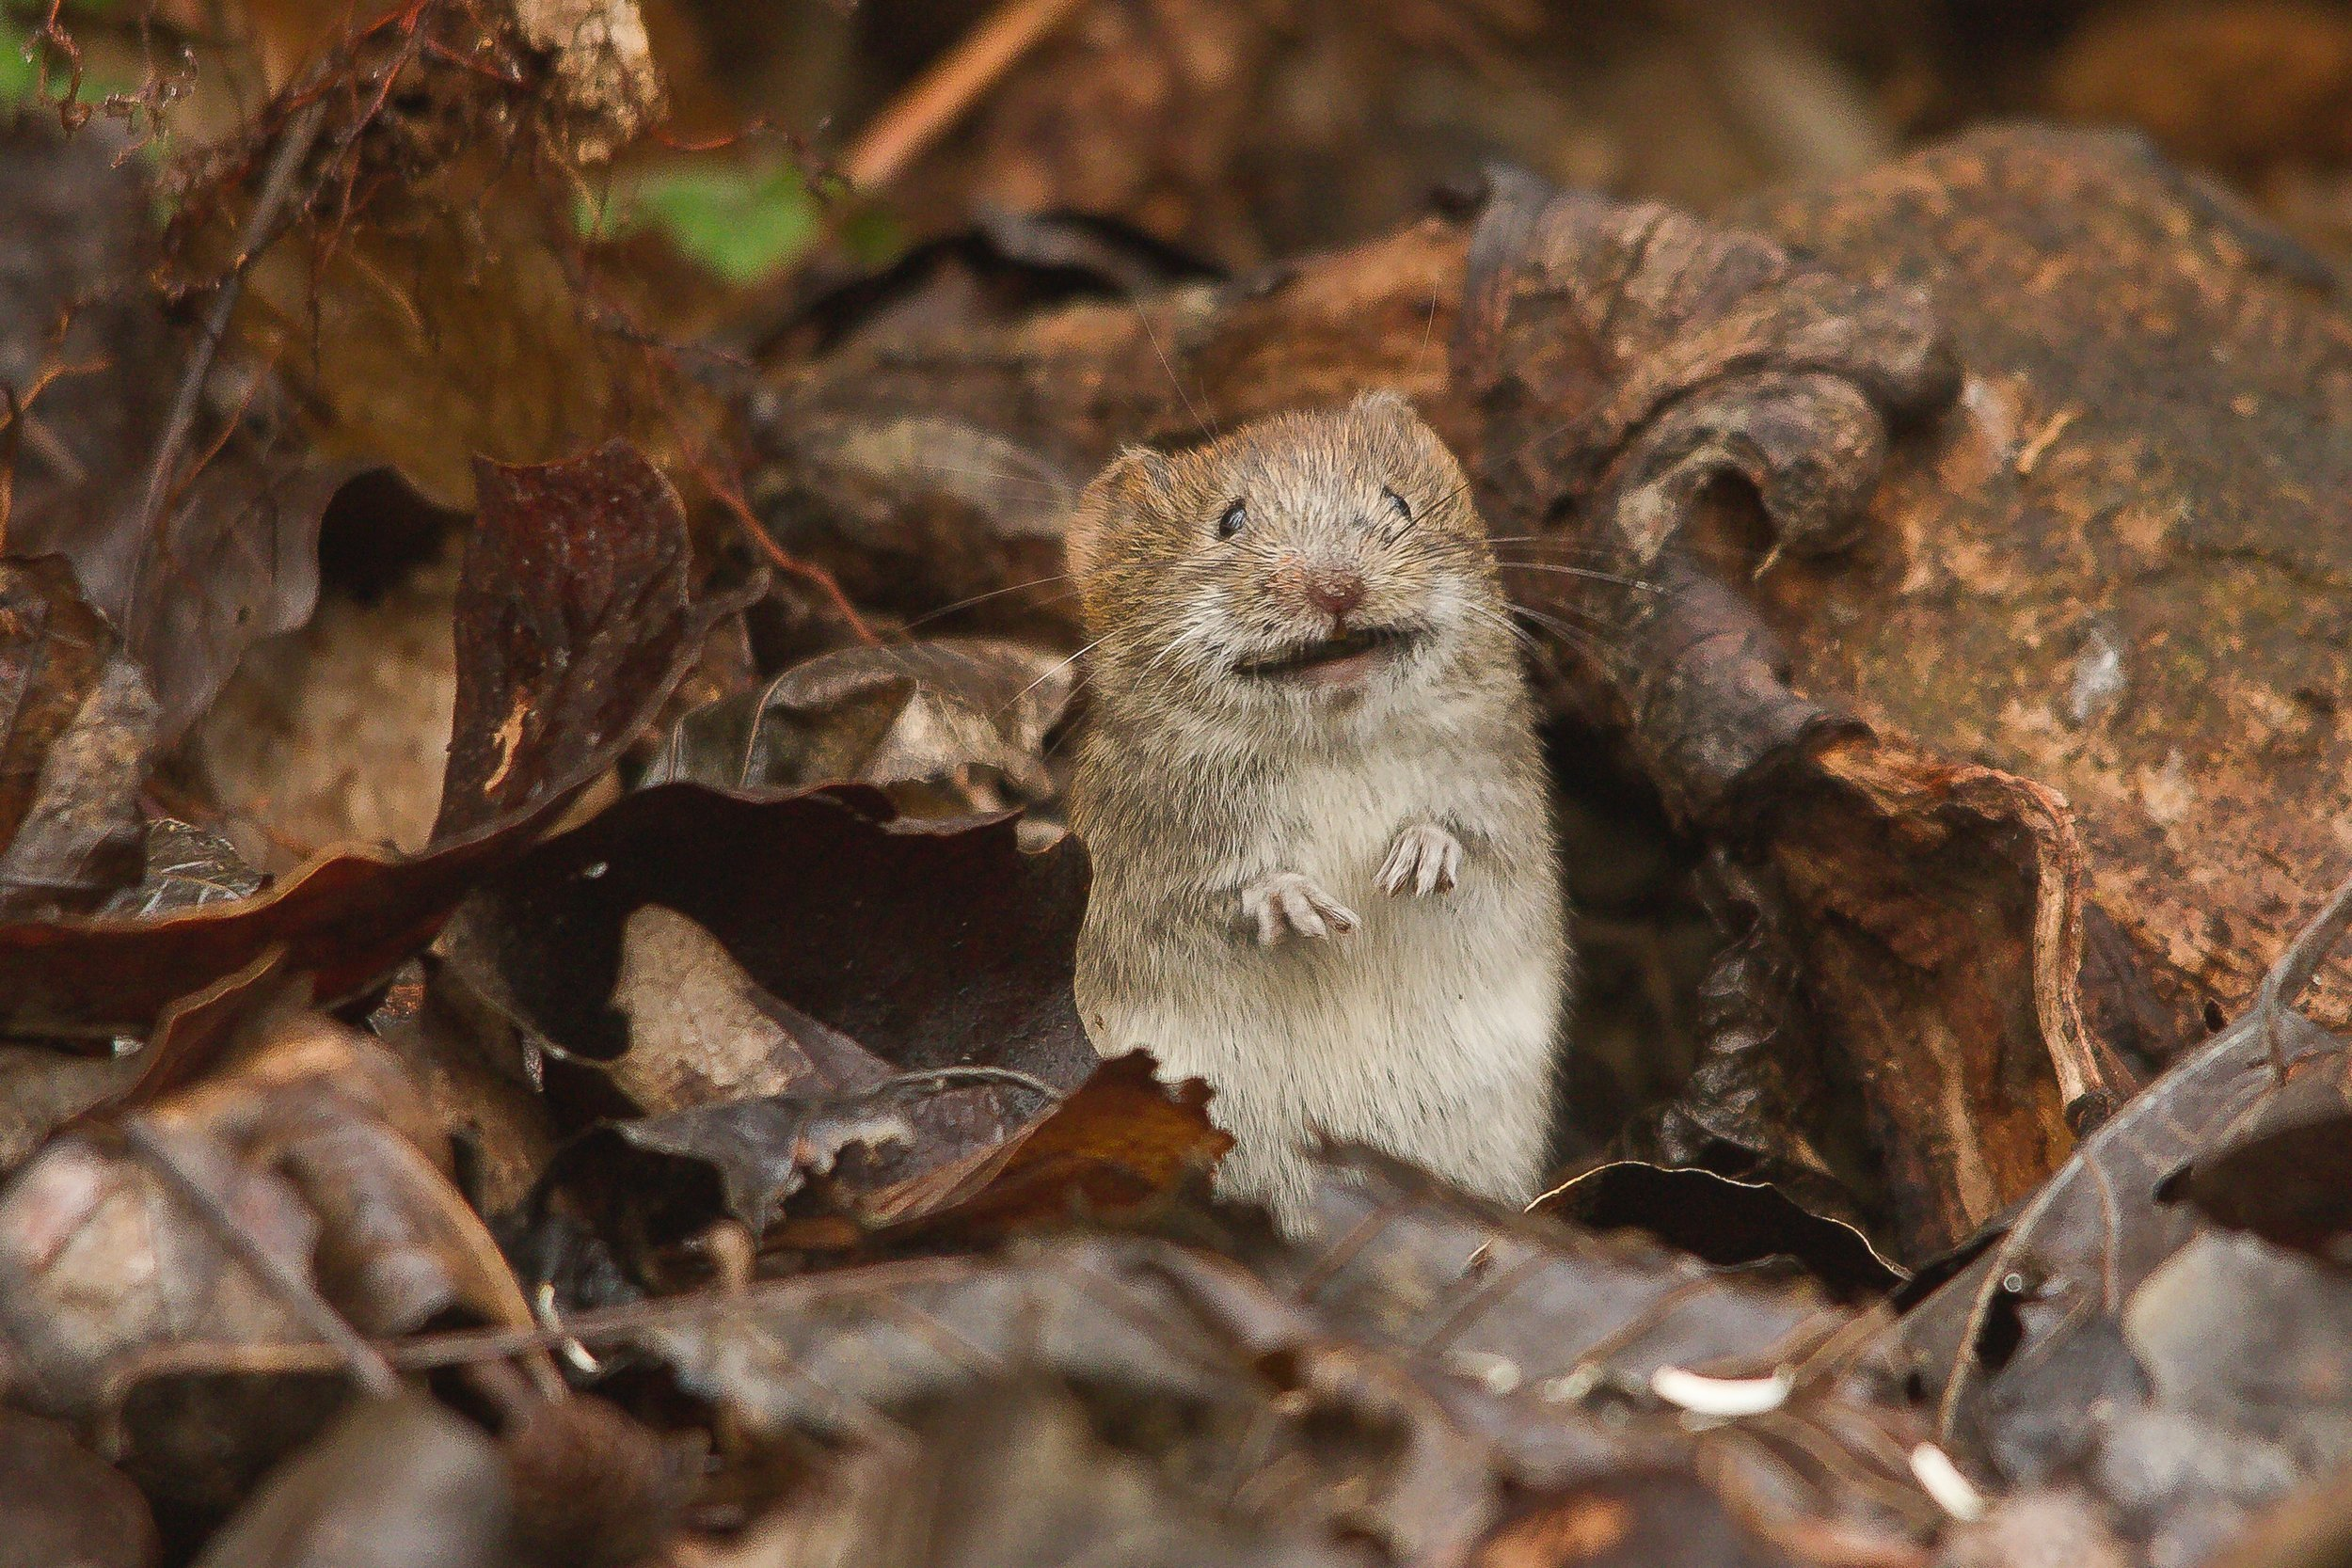 This little guy probably has hantavirus. Just check out that guilty face.